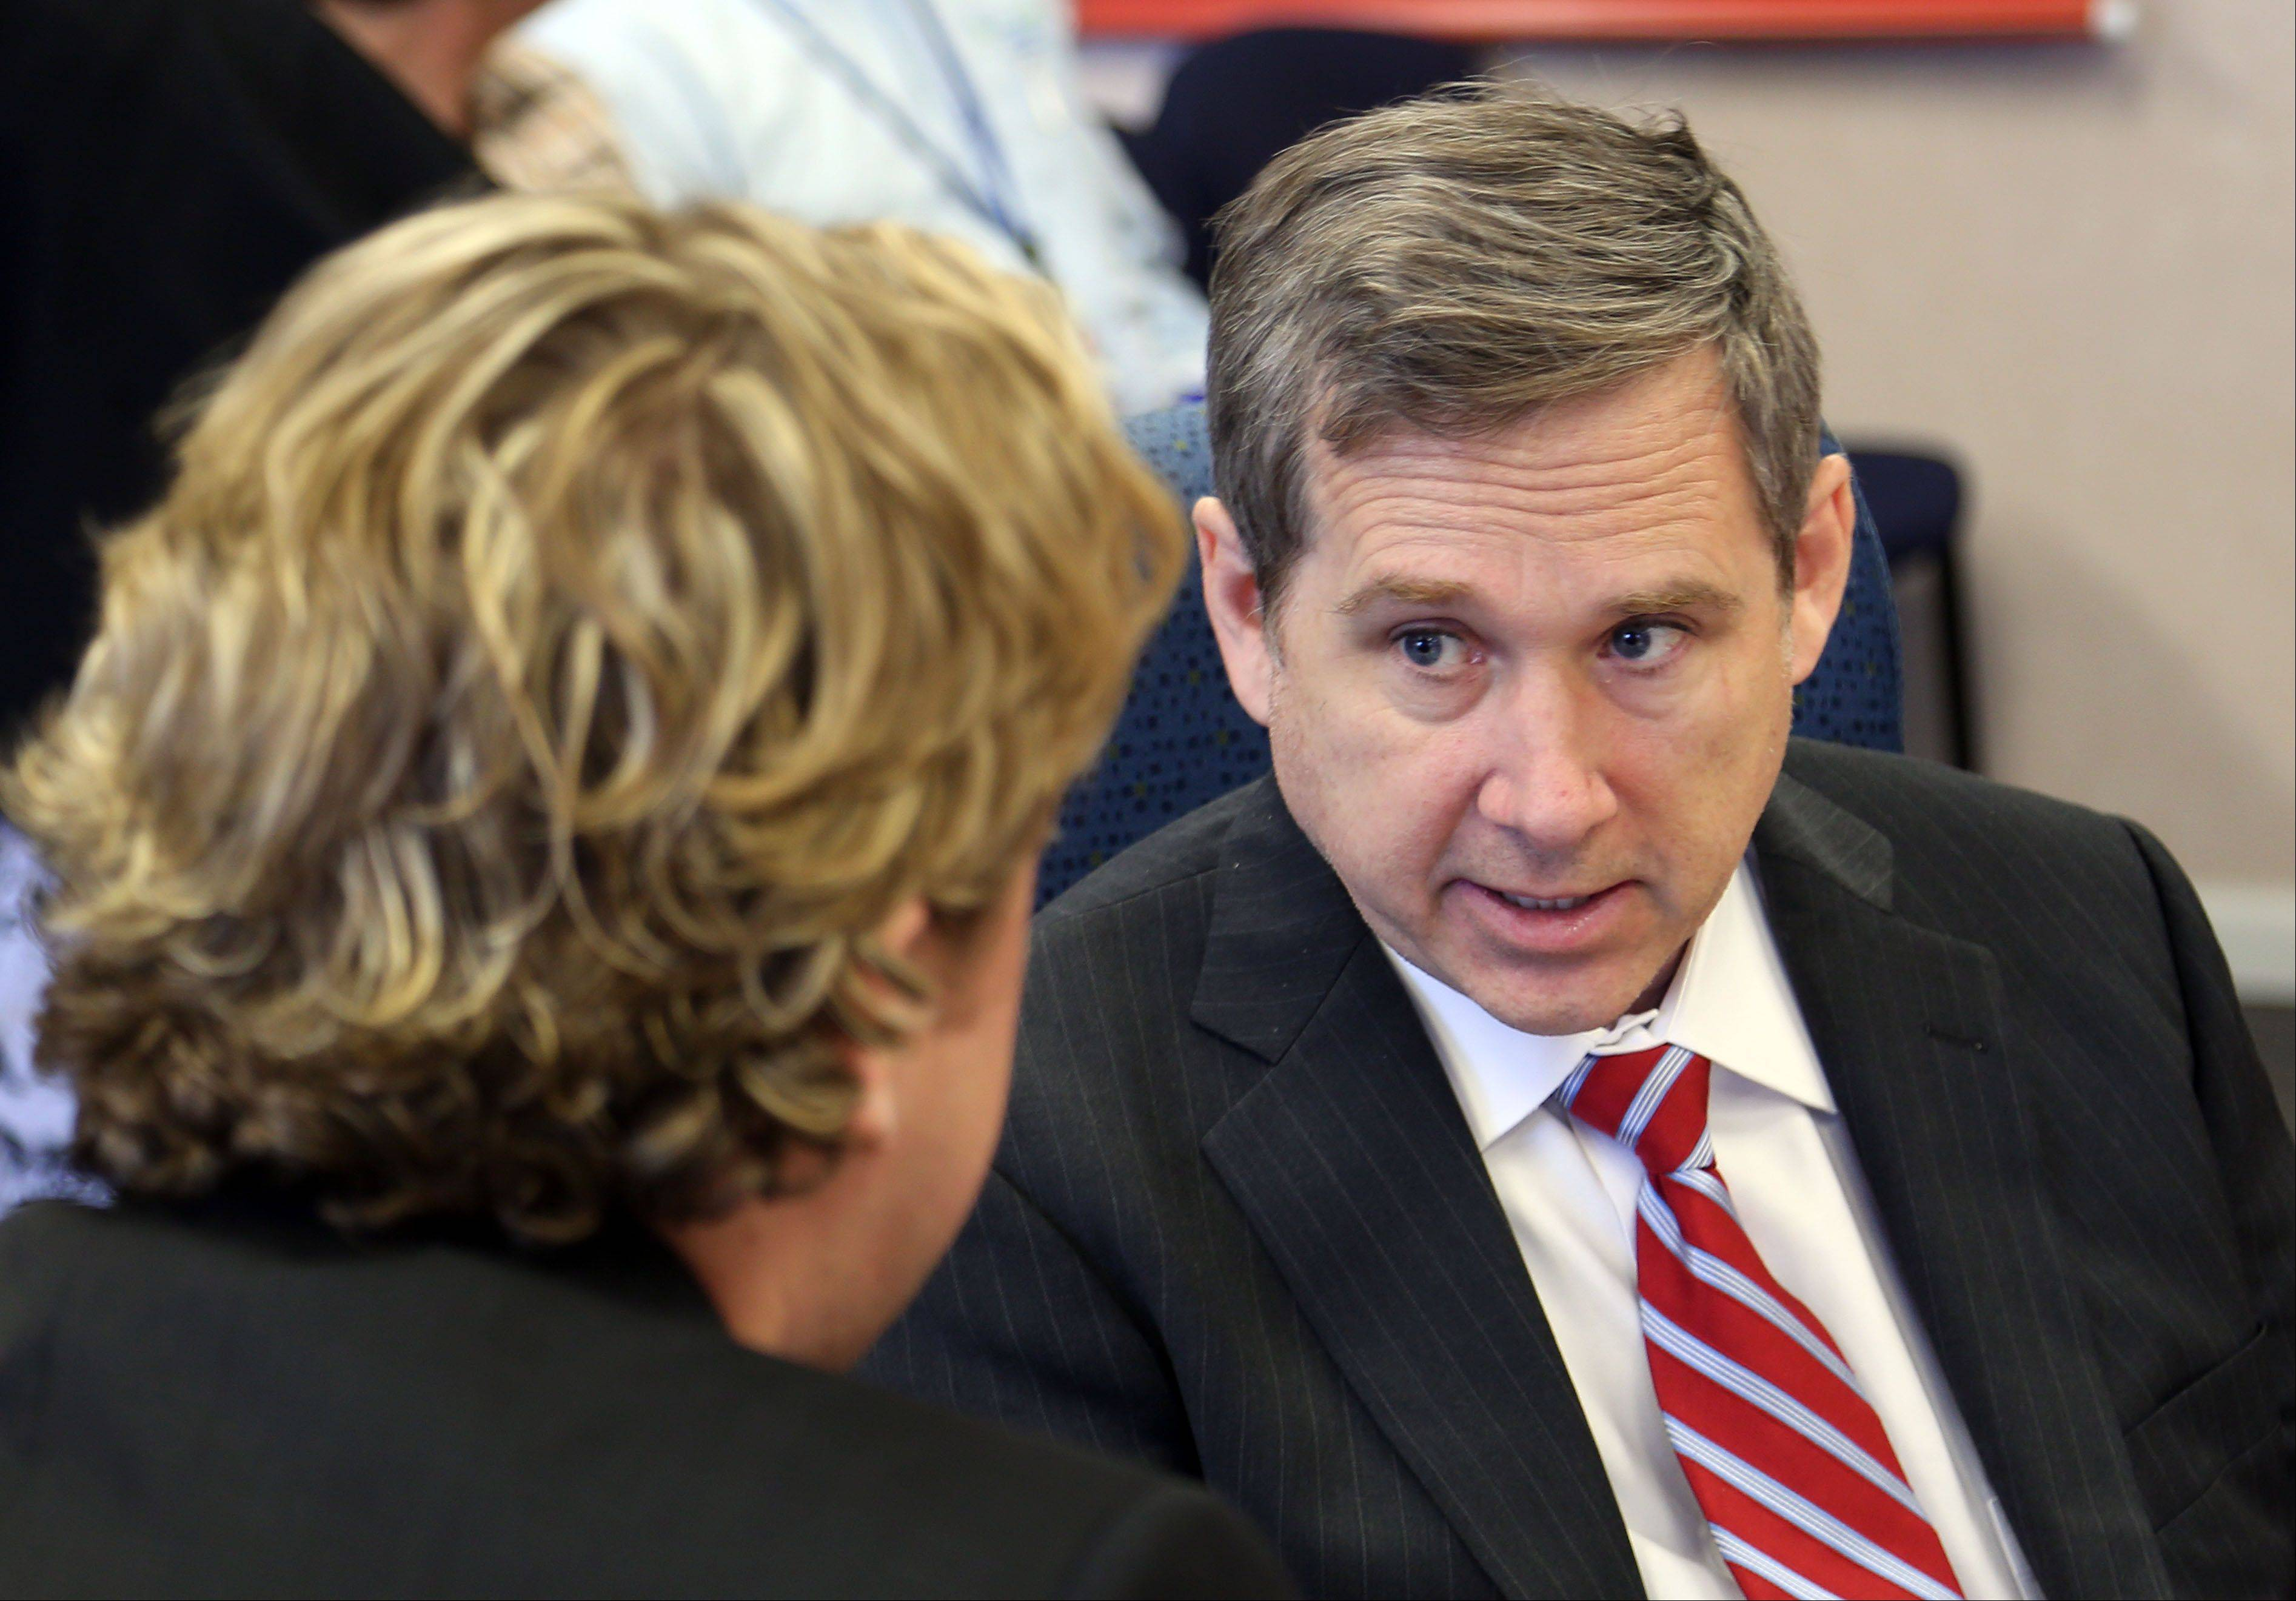 U.S. Sen. Mark Kirk talks with Lake County Chairman Board Aaron Lawlor during a meeting Wednesday at the Lake County Division of Transportation in Libertyville. Kirk met with local leaders to discuss recent flooding and transportation issues.